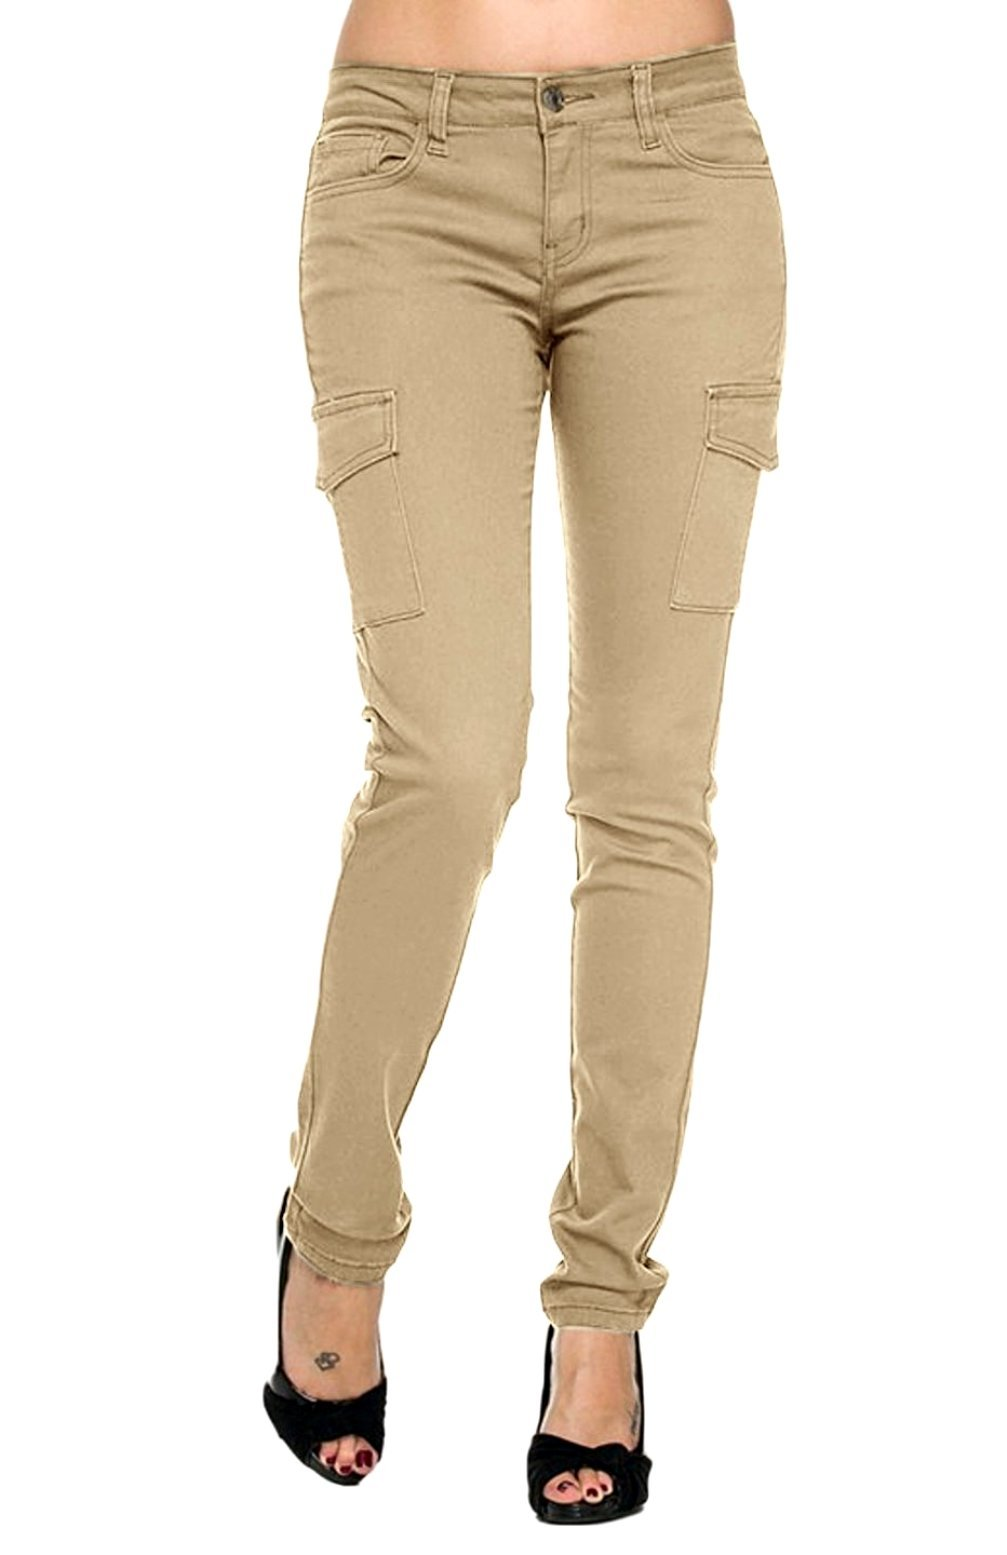 B.B Jeans Ladies Women's Cargo Pants Sexy Stretch Solid Casual Skinny (3, Twill Cargo 90010 Khaki) by JEANS FOR LOVE (Image #1)